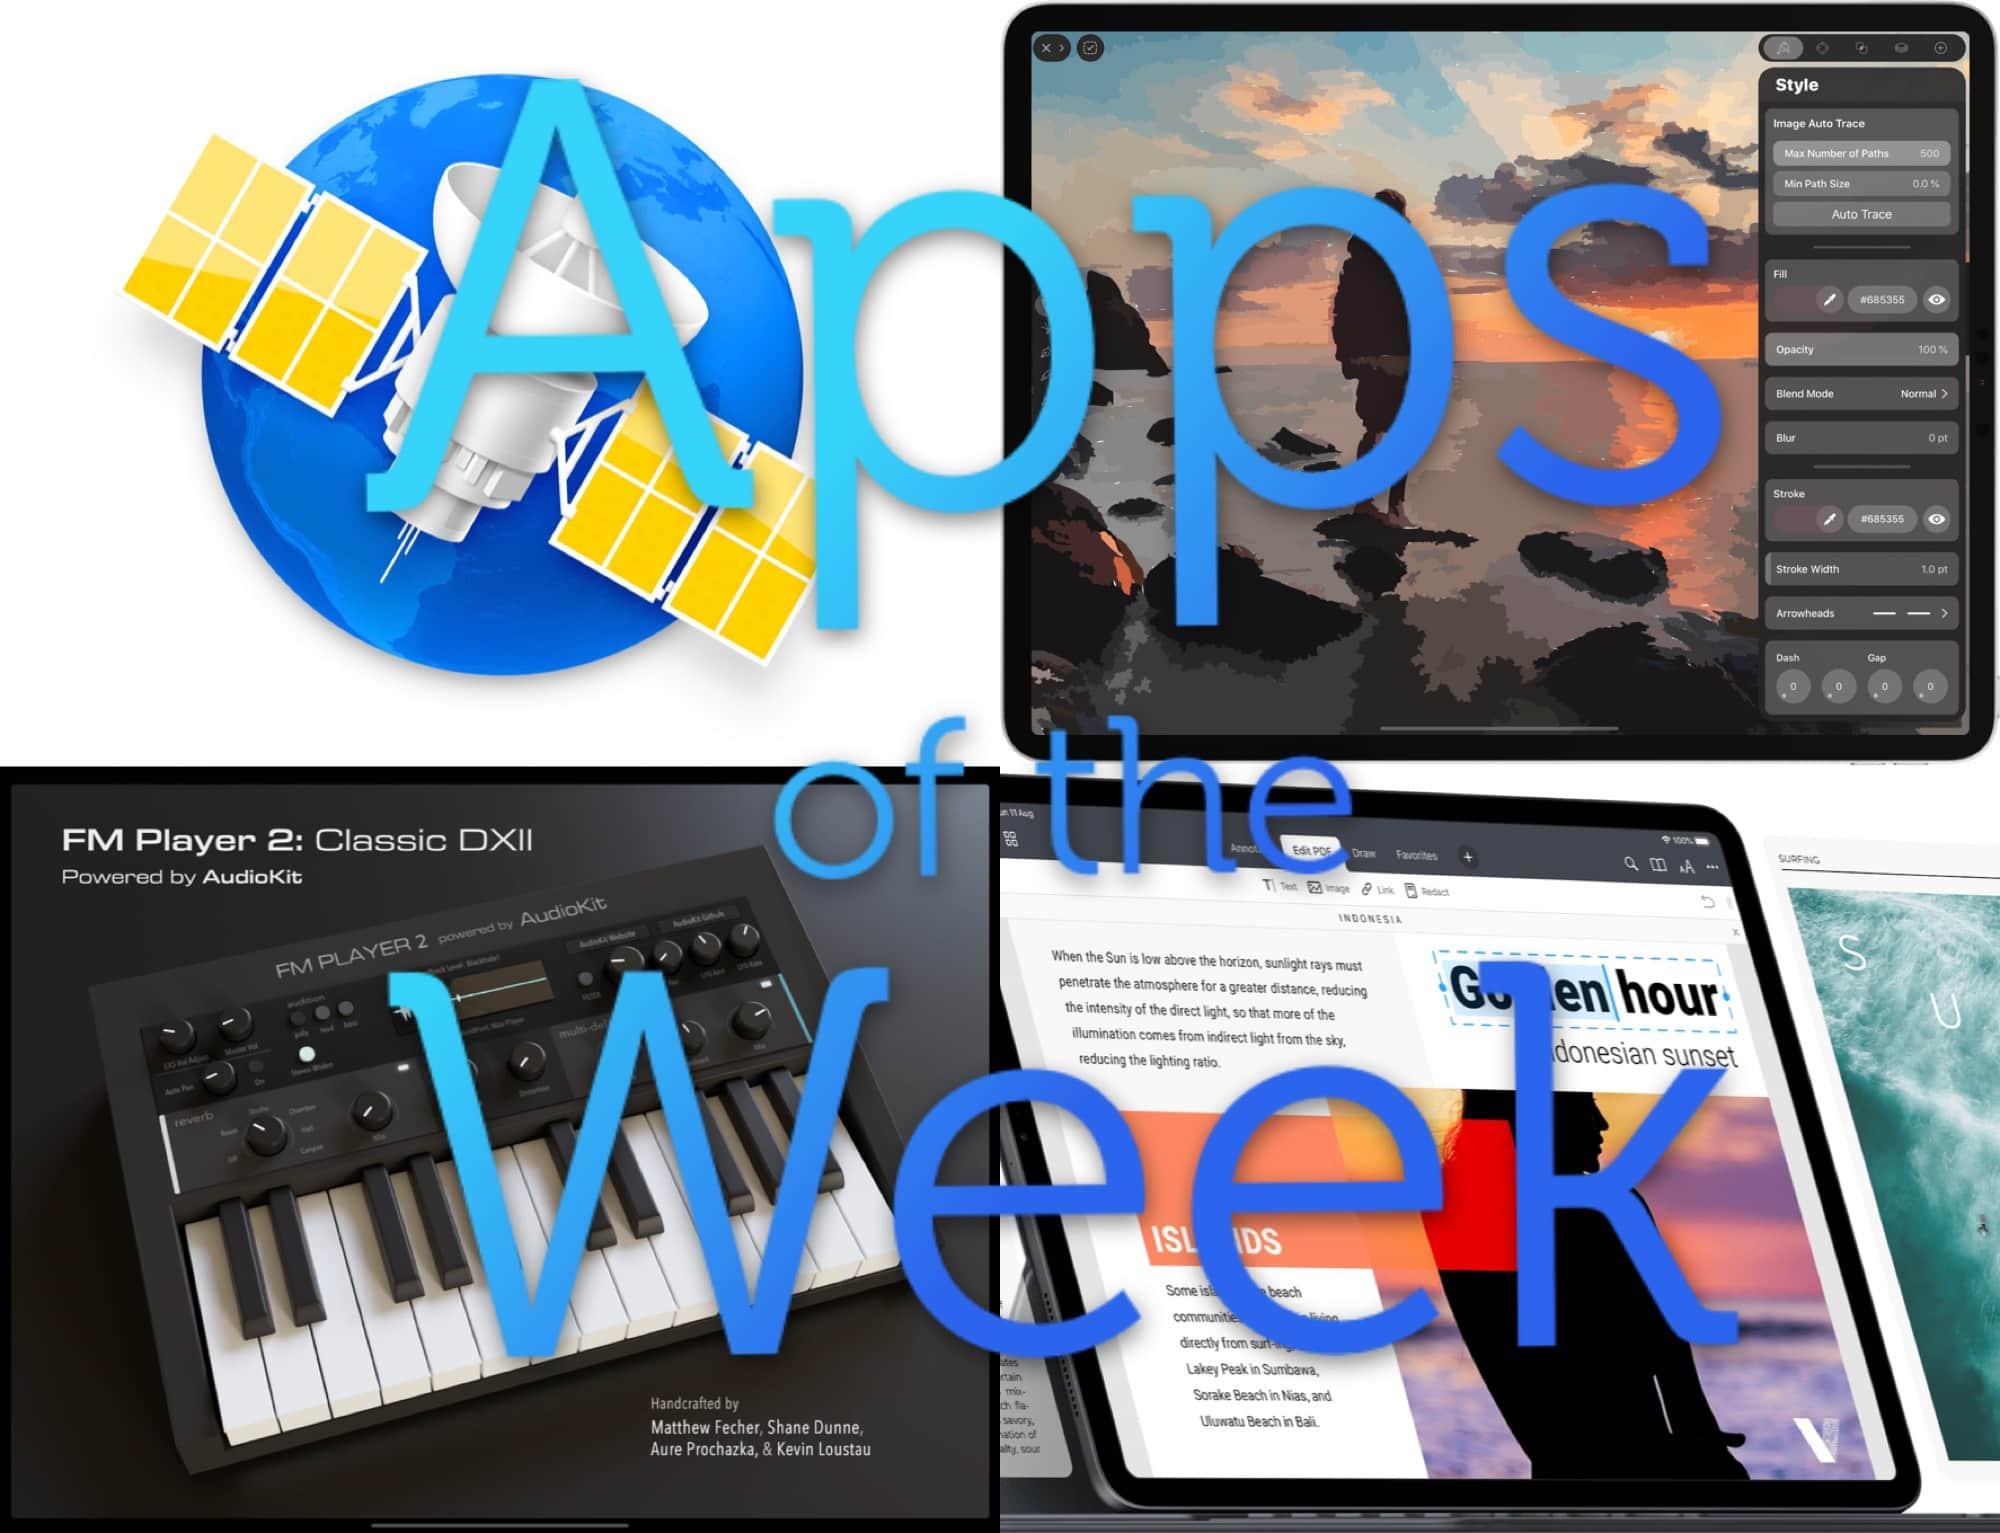 The best news, design and music apps anywhere in the world.